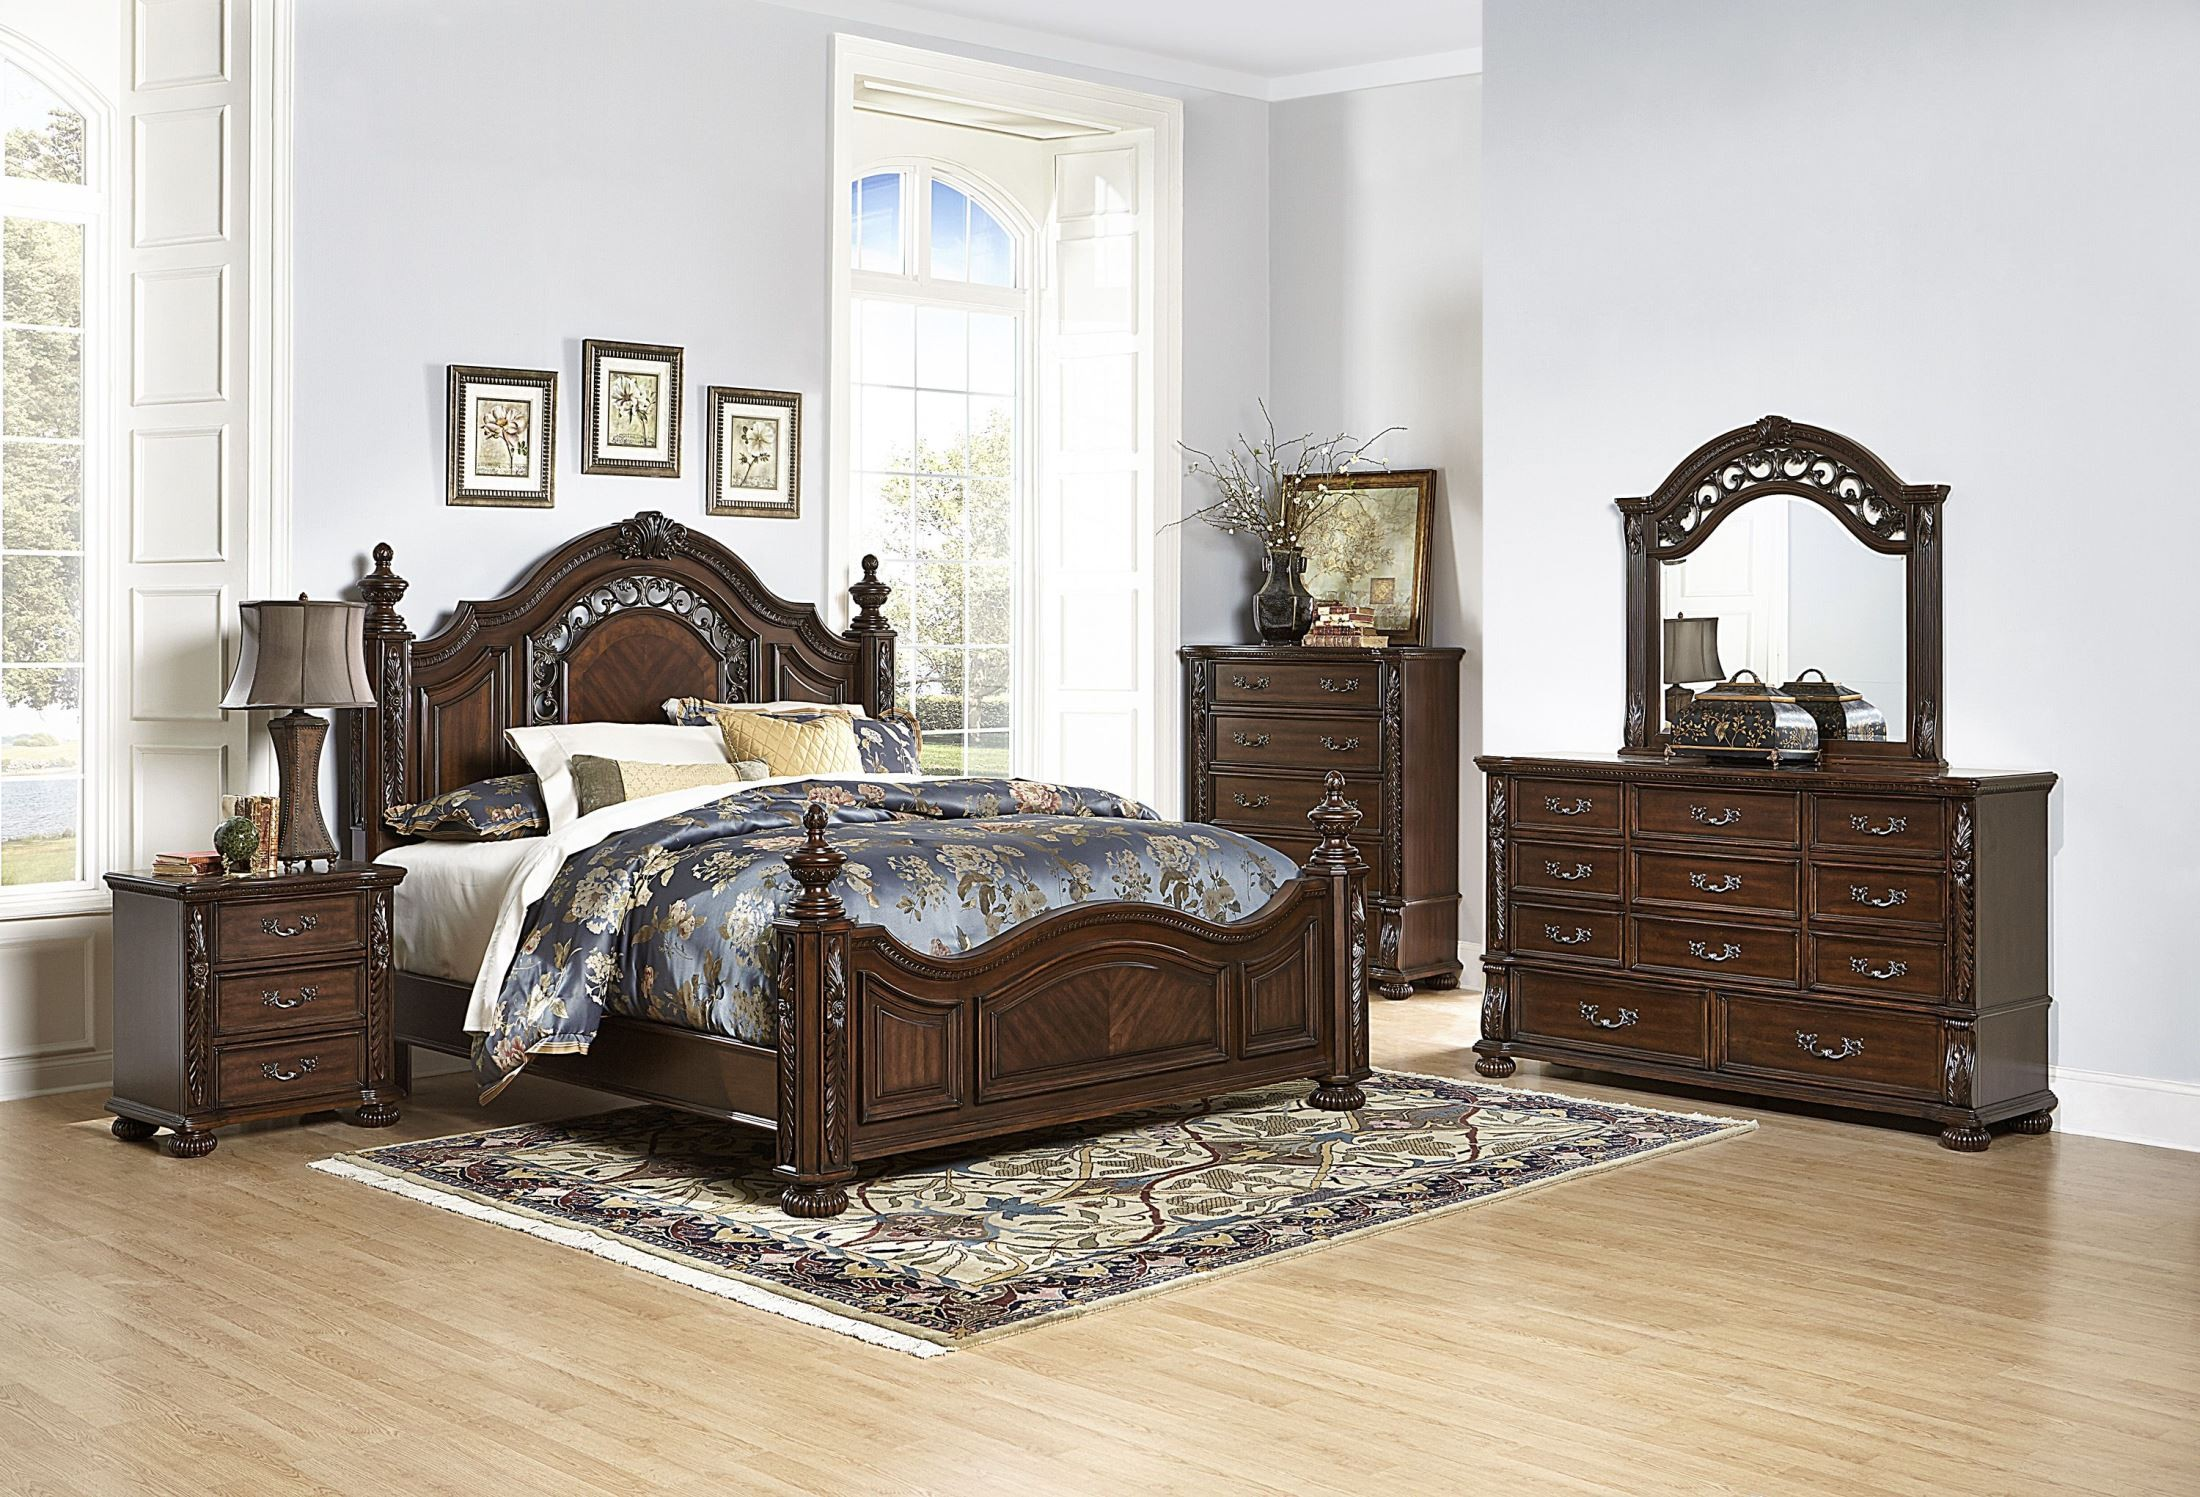 Courts bedroom furniture